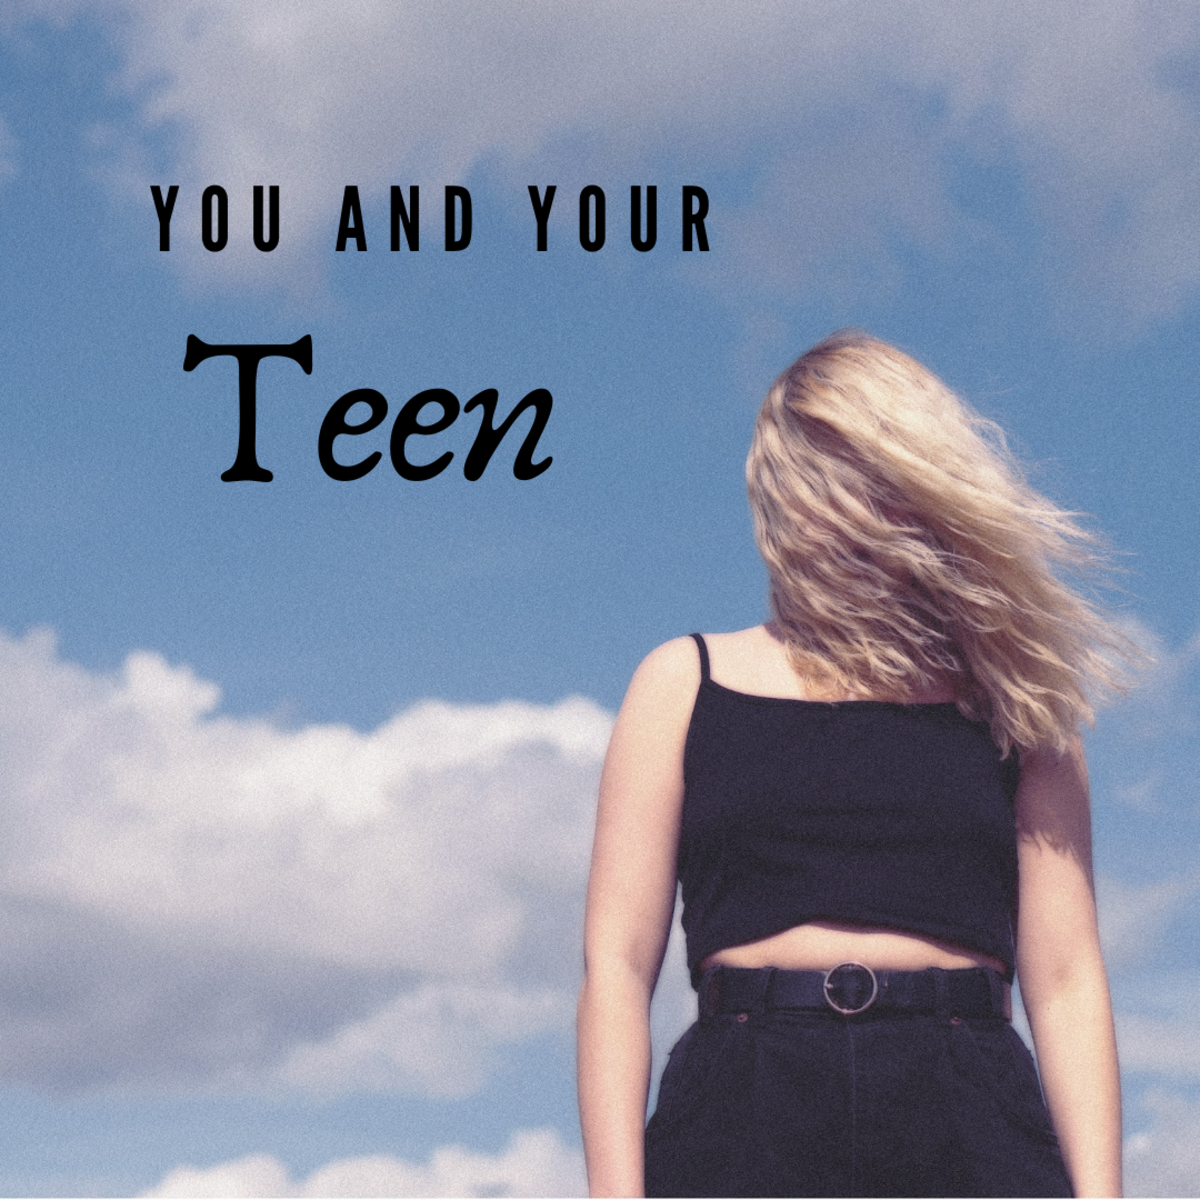 5 Relationship Building Exercises for Teens and Parents